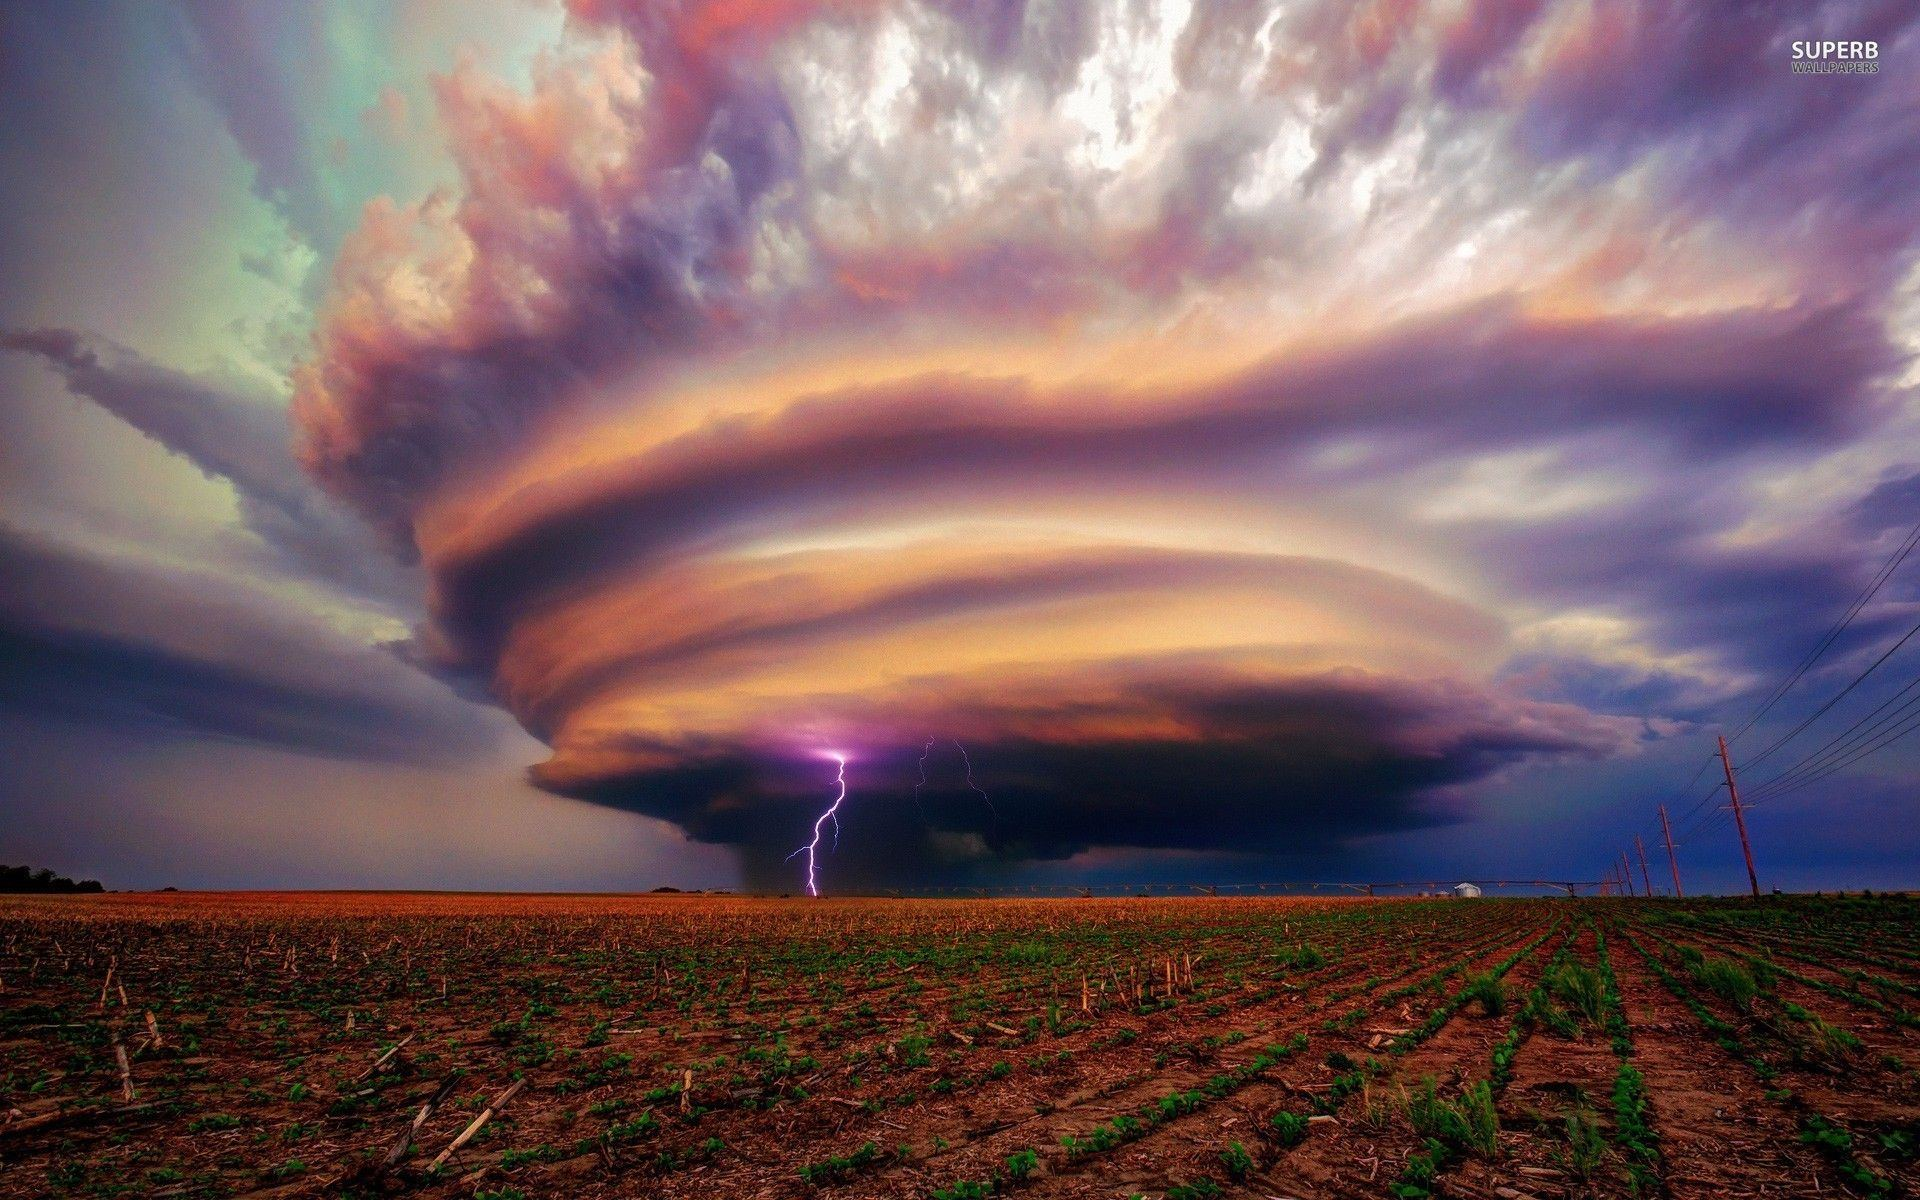 Dreaming about Tornado